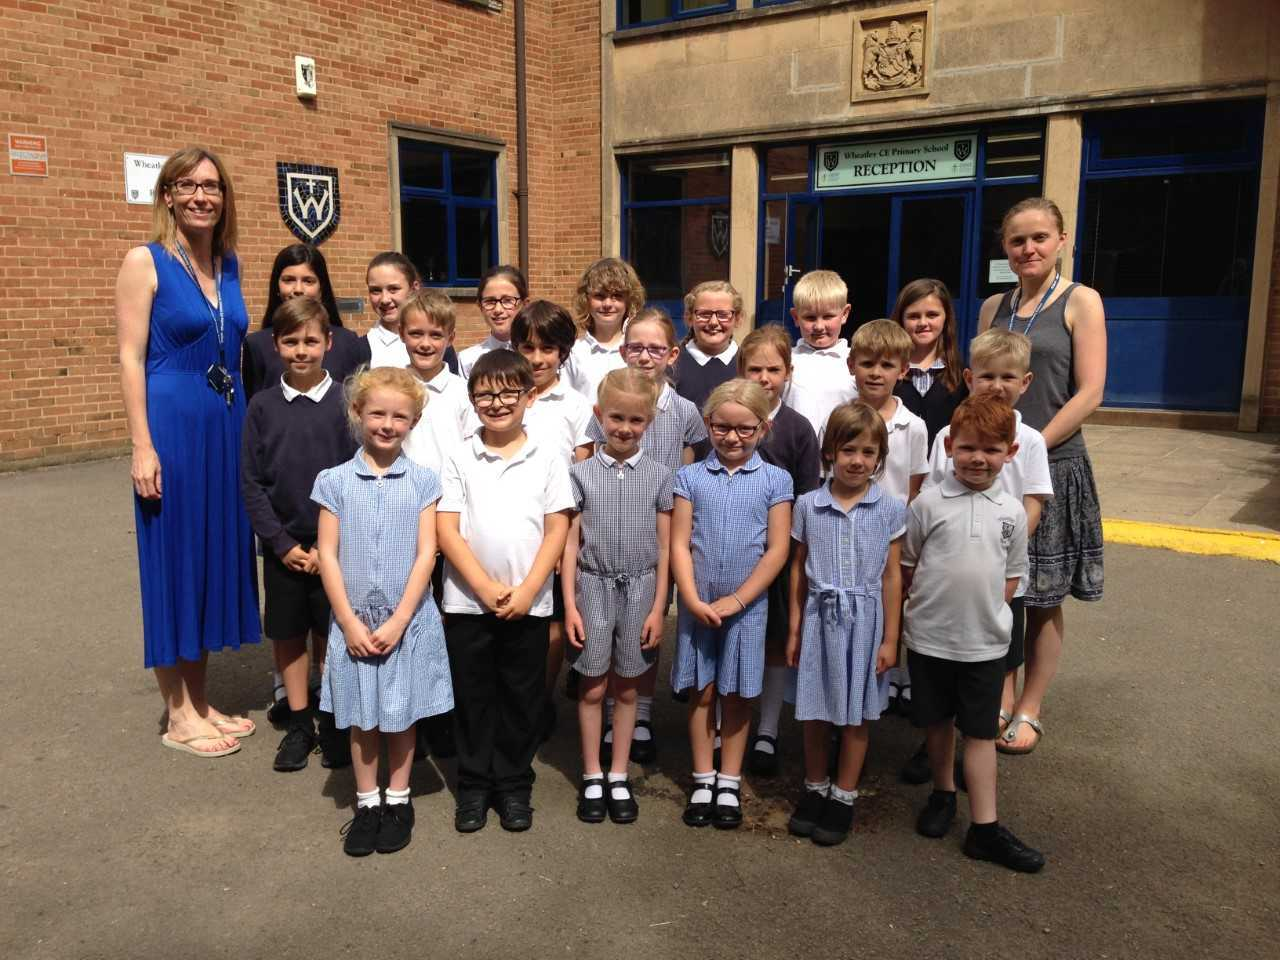 New Ofsted report for Wheatley CE Primary School, rated 'good'